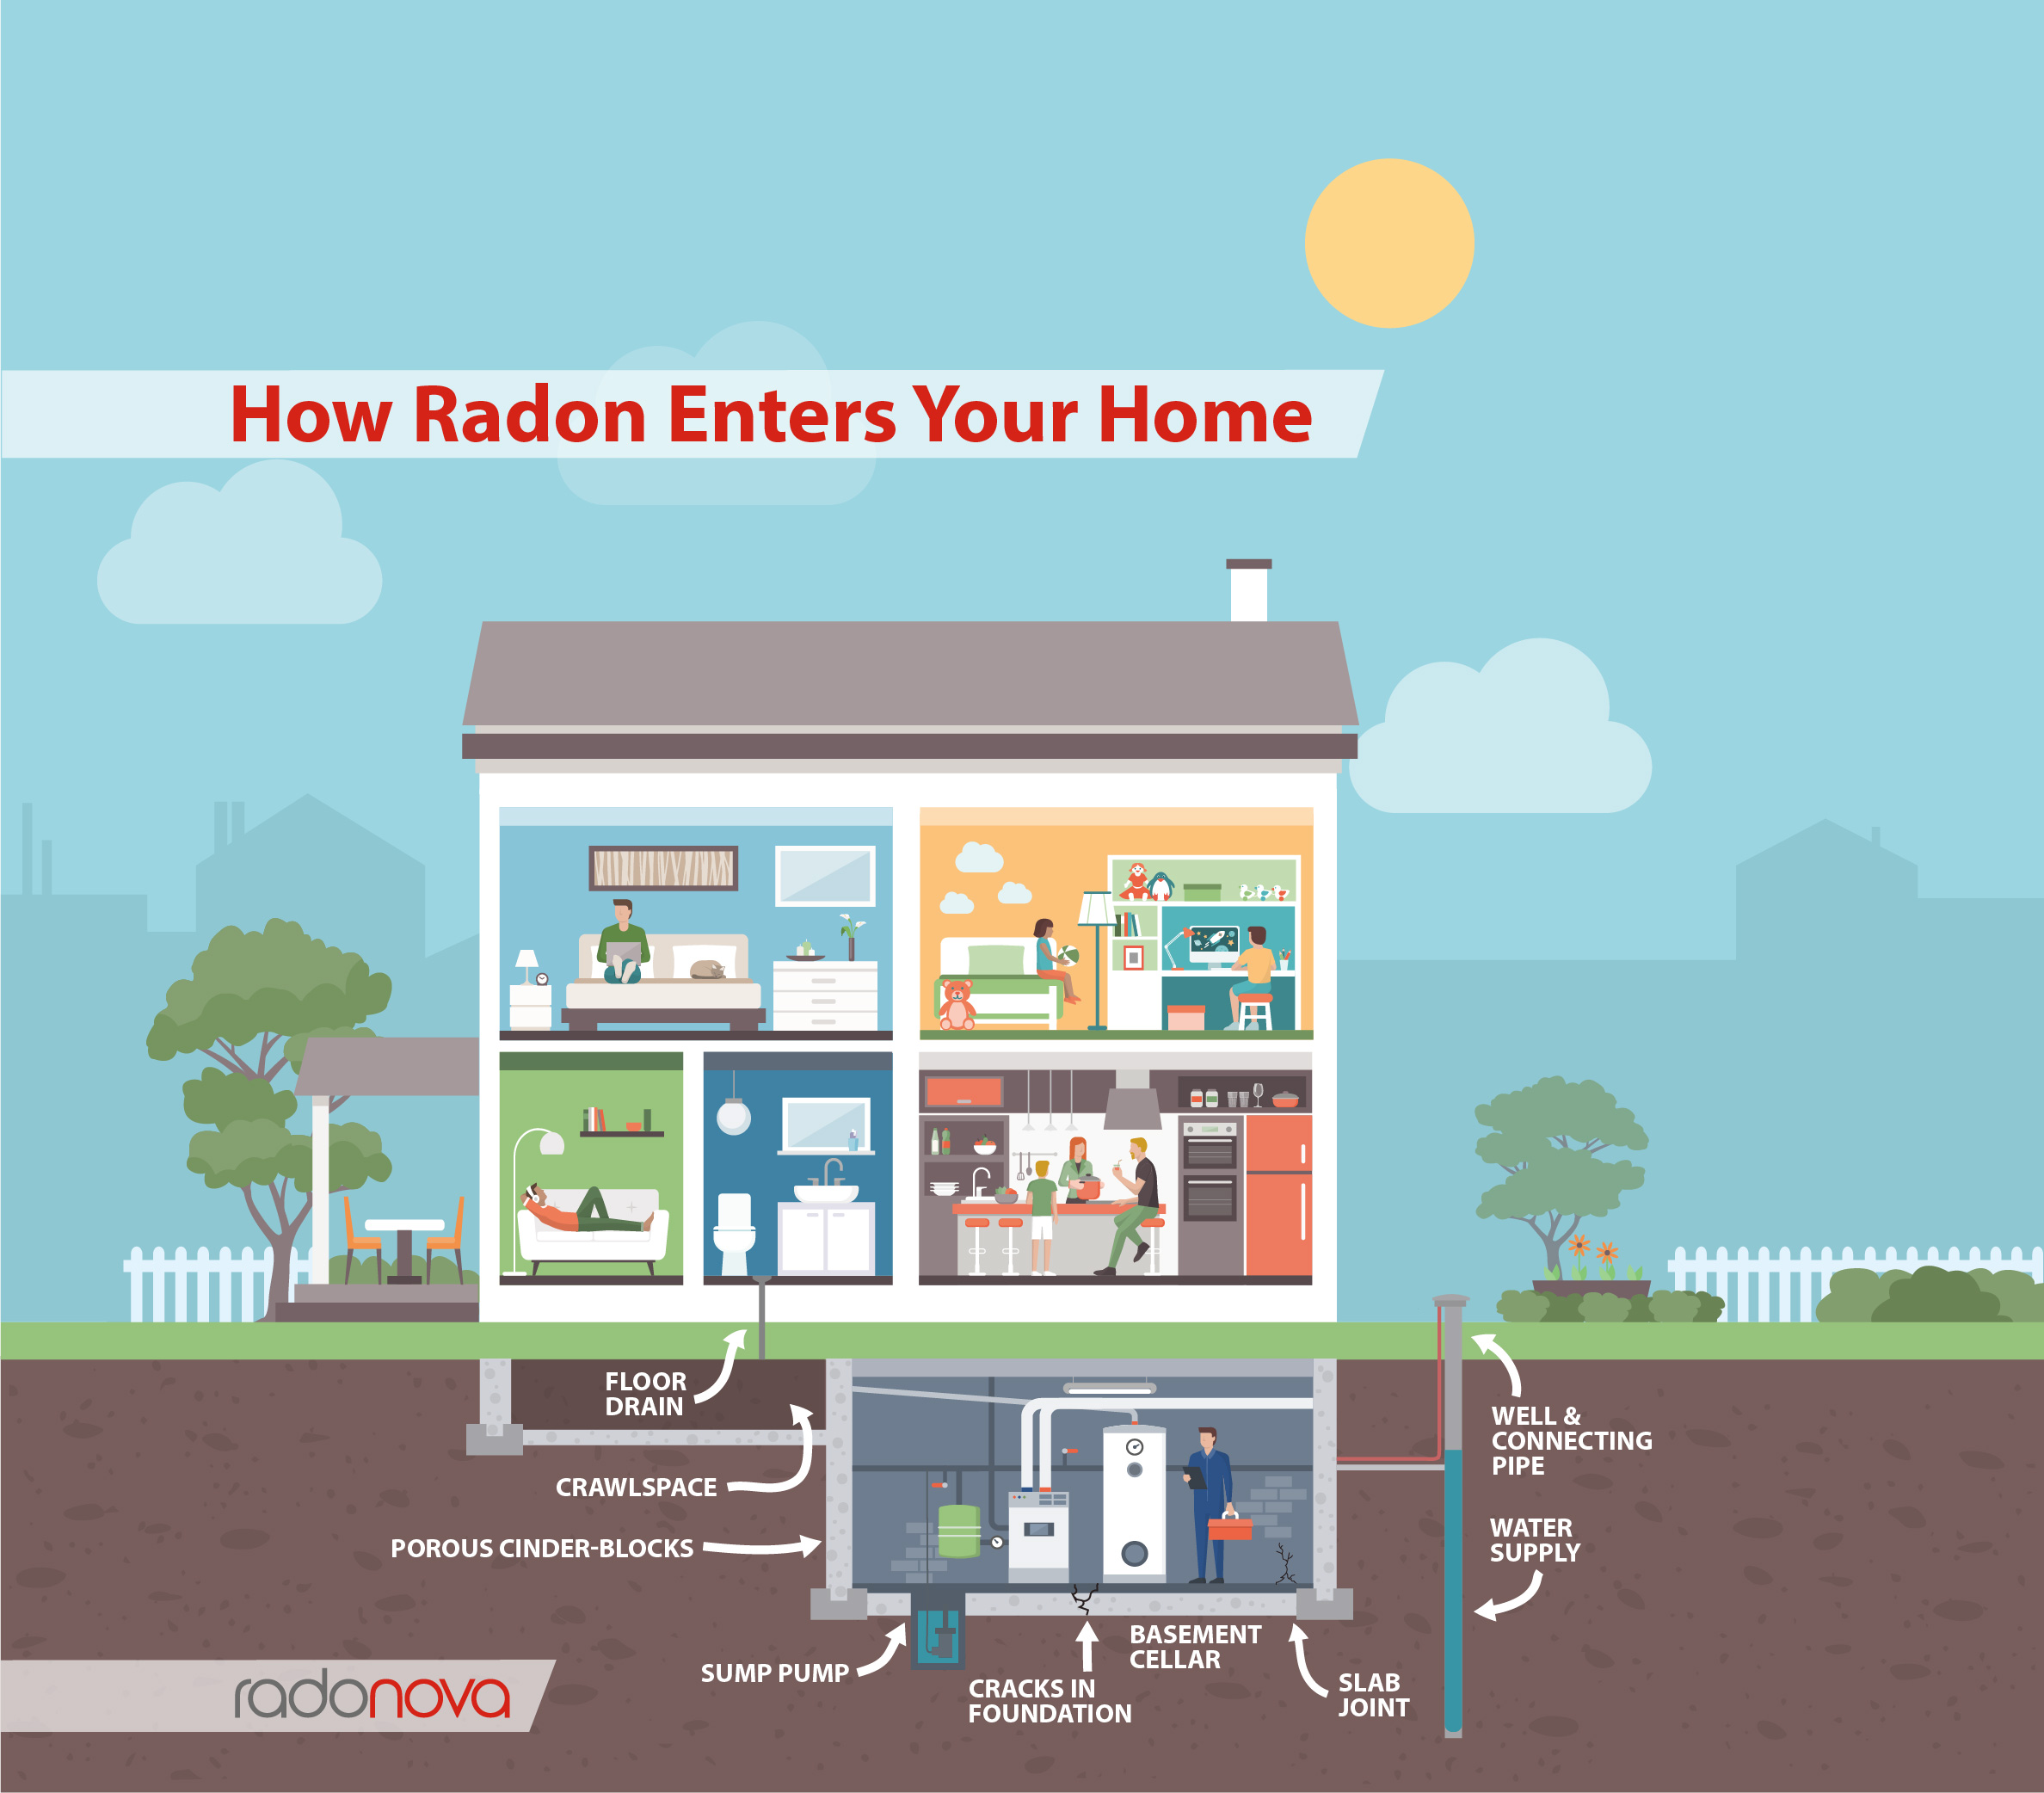 See what causes radon to enter your home starting in your basement.